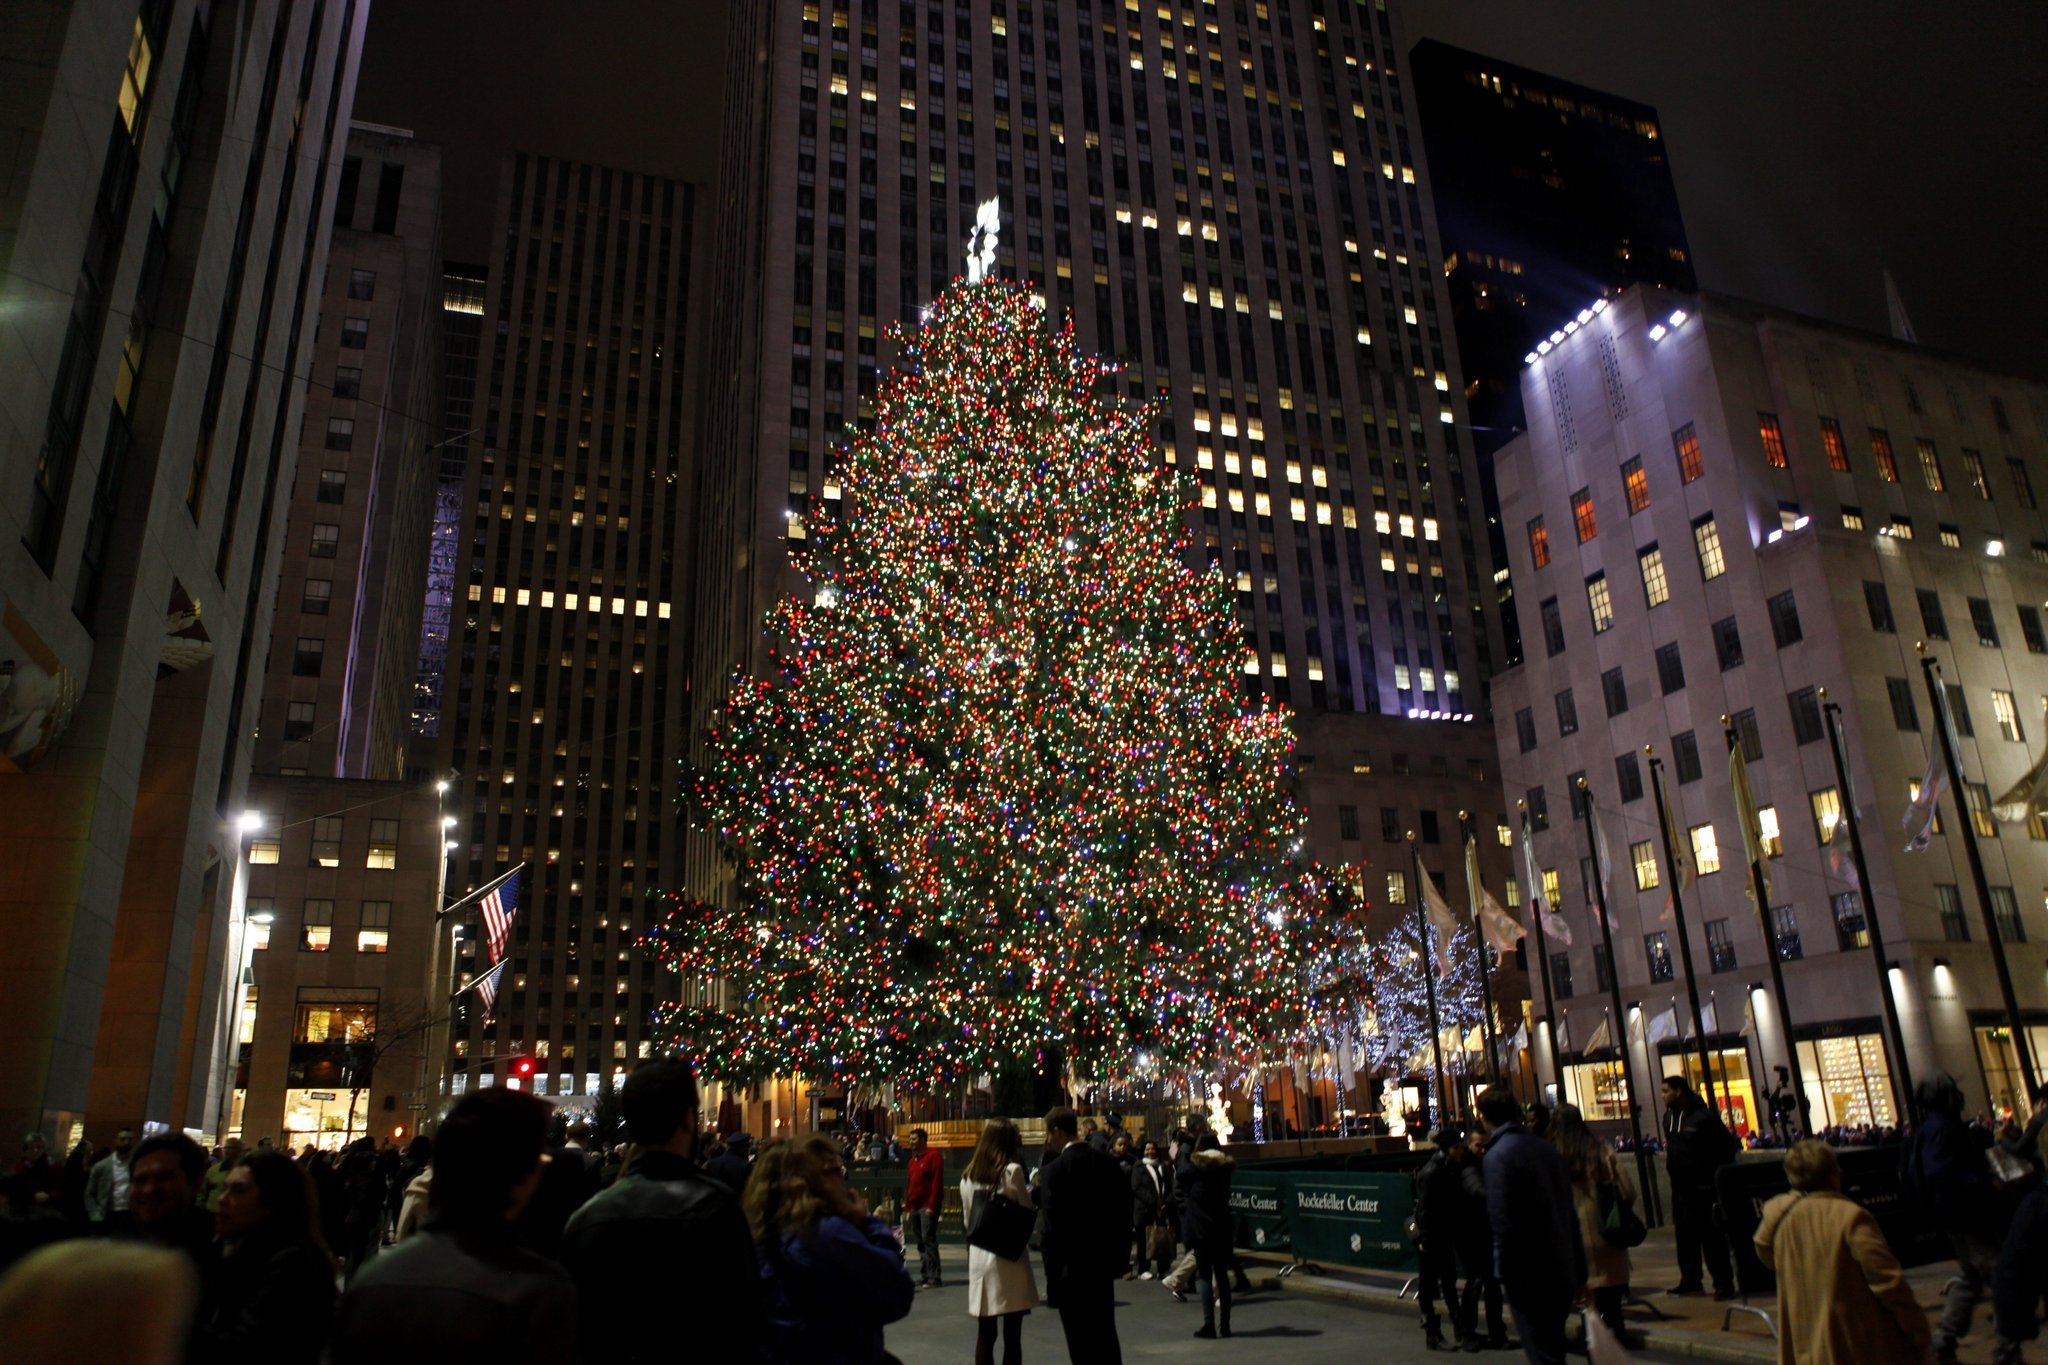 2016 Rockefeller Center Christmas tree has roots in Upstate NY backyard | NewYorkUpstate.com & 2016 Rockefeller Center Christmas tree has roots in Upstate NY ... azcodes.com